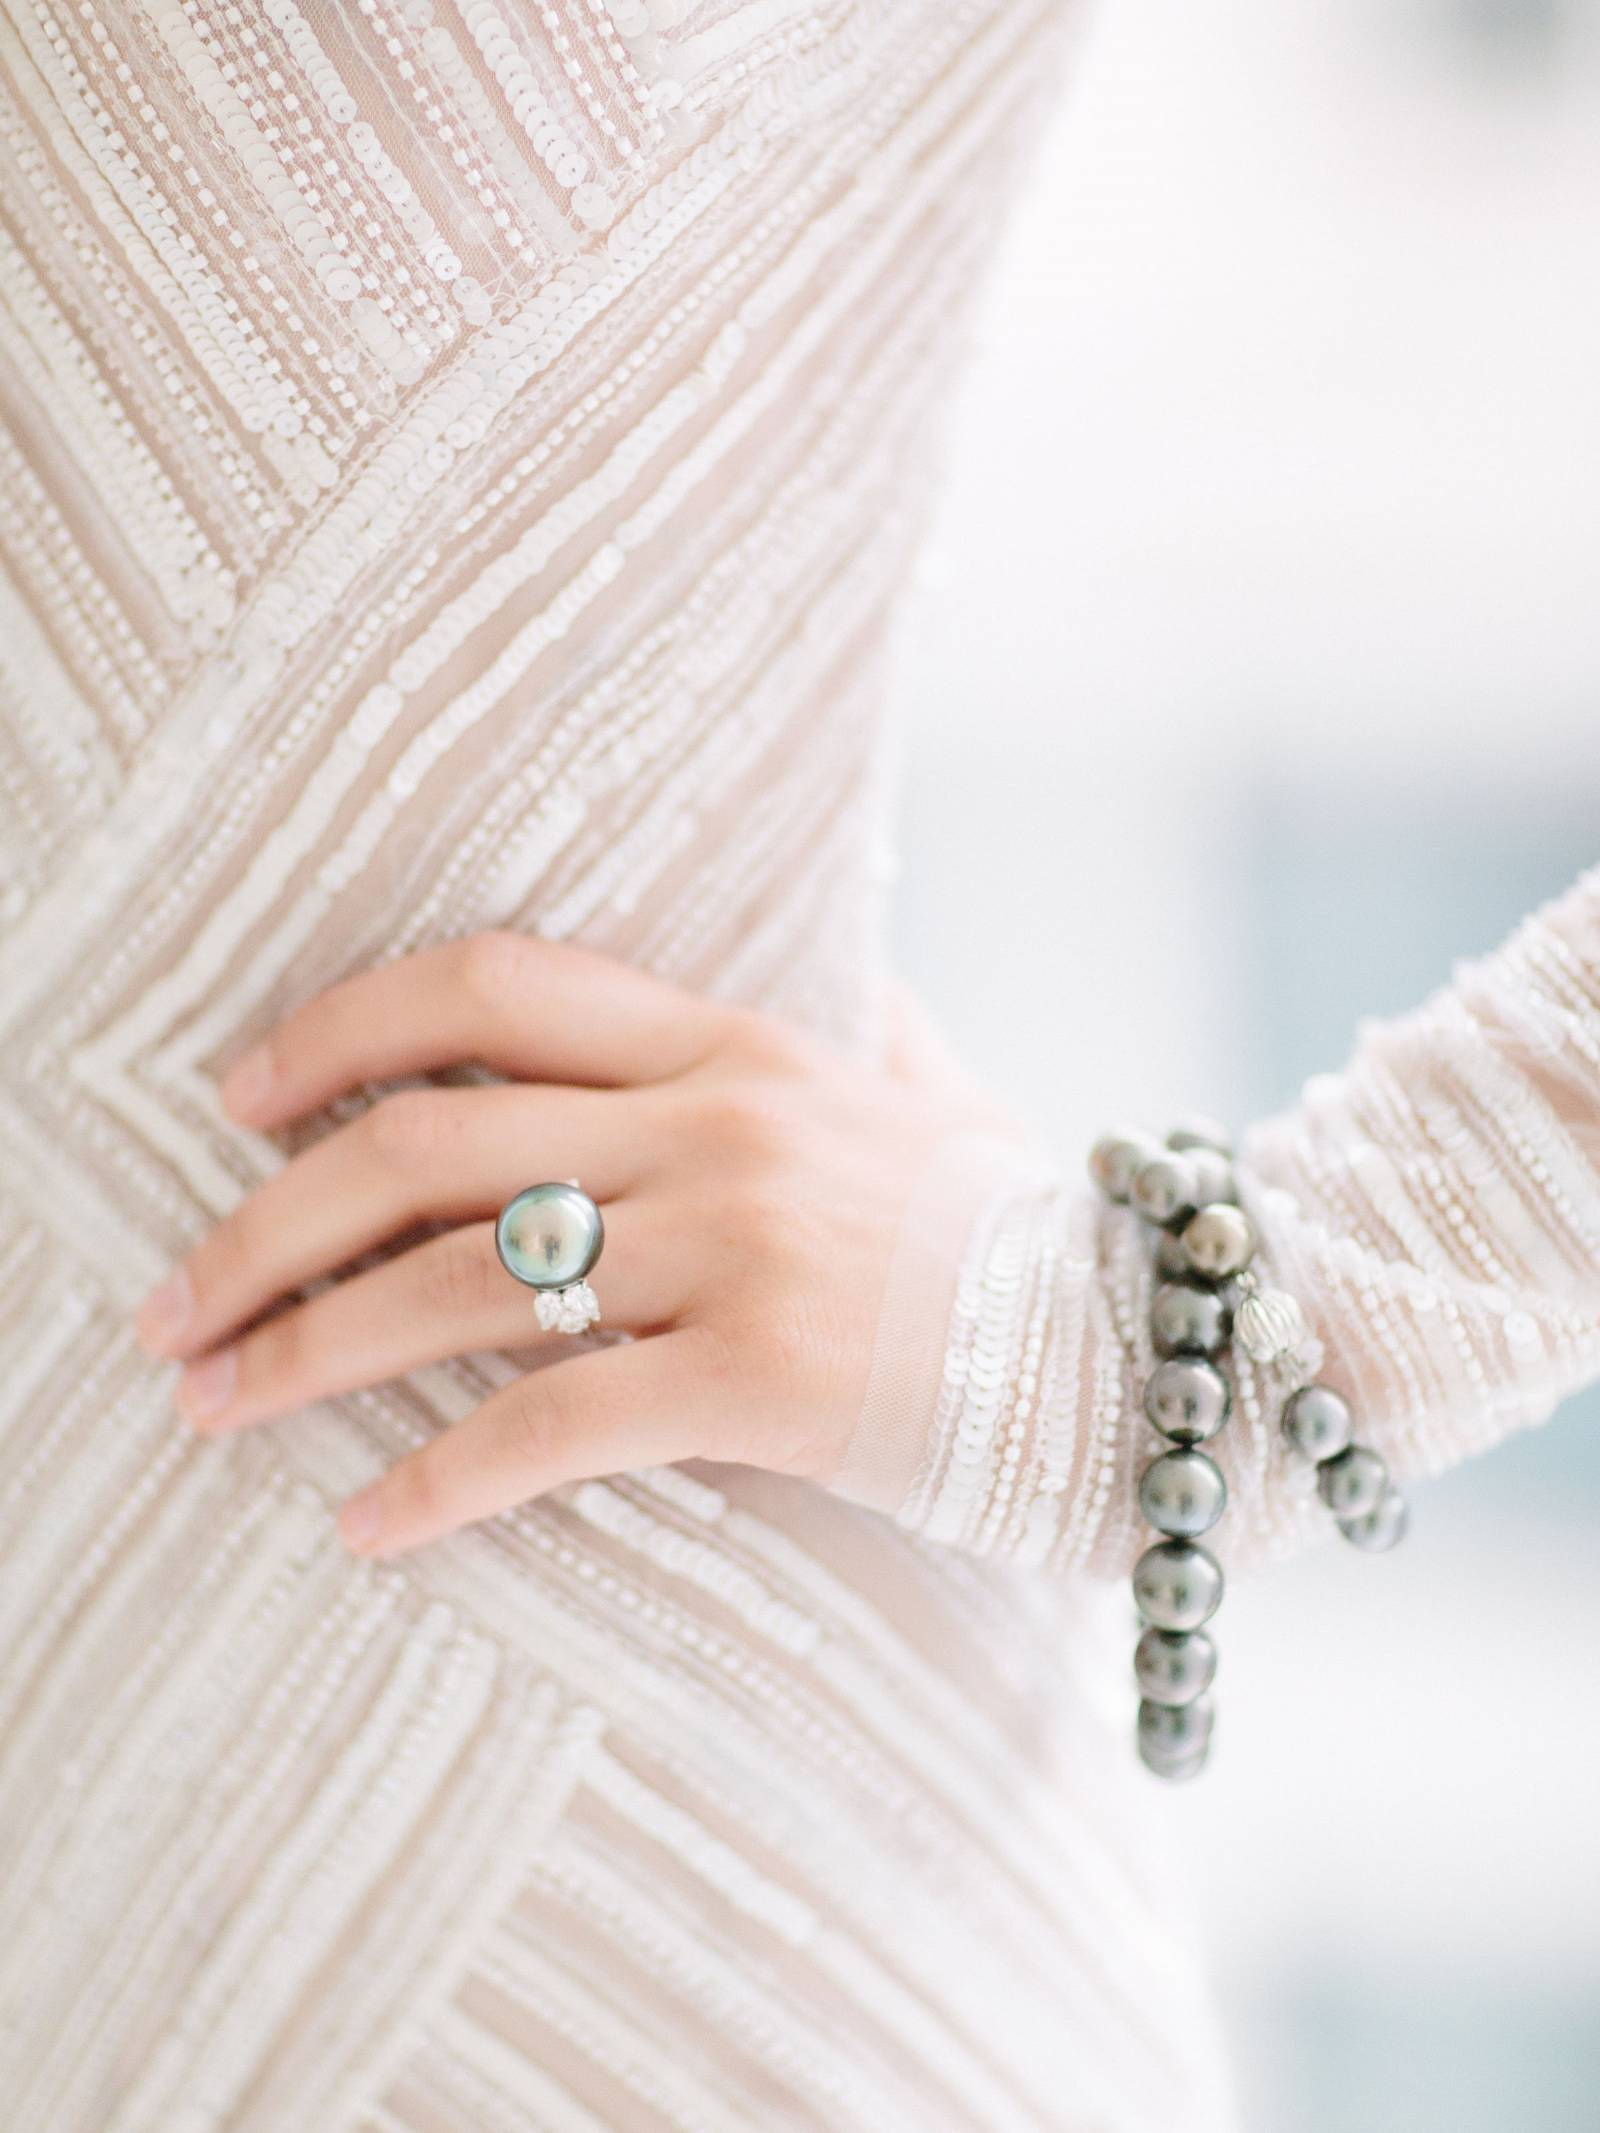 Elegant ring and bracelet by Campanelli  & Pear, from Jinwang